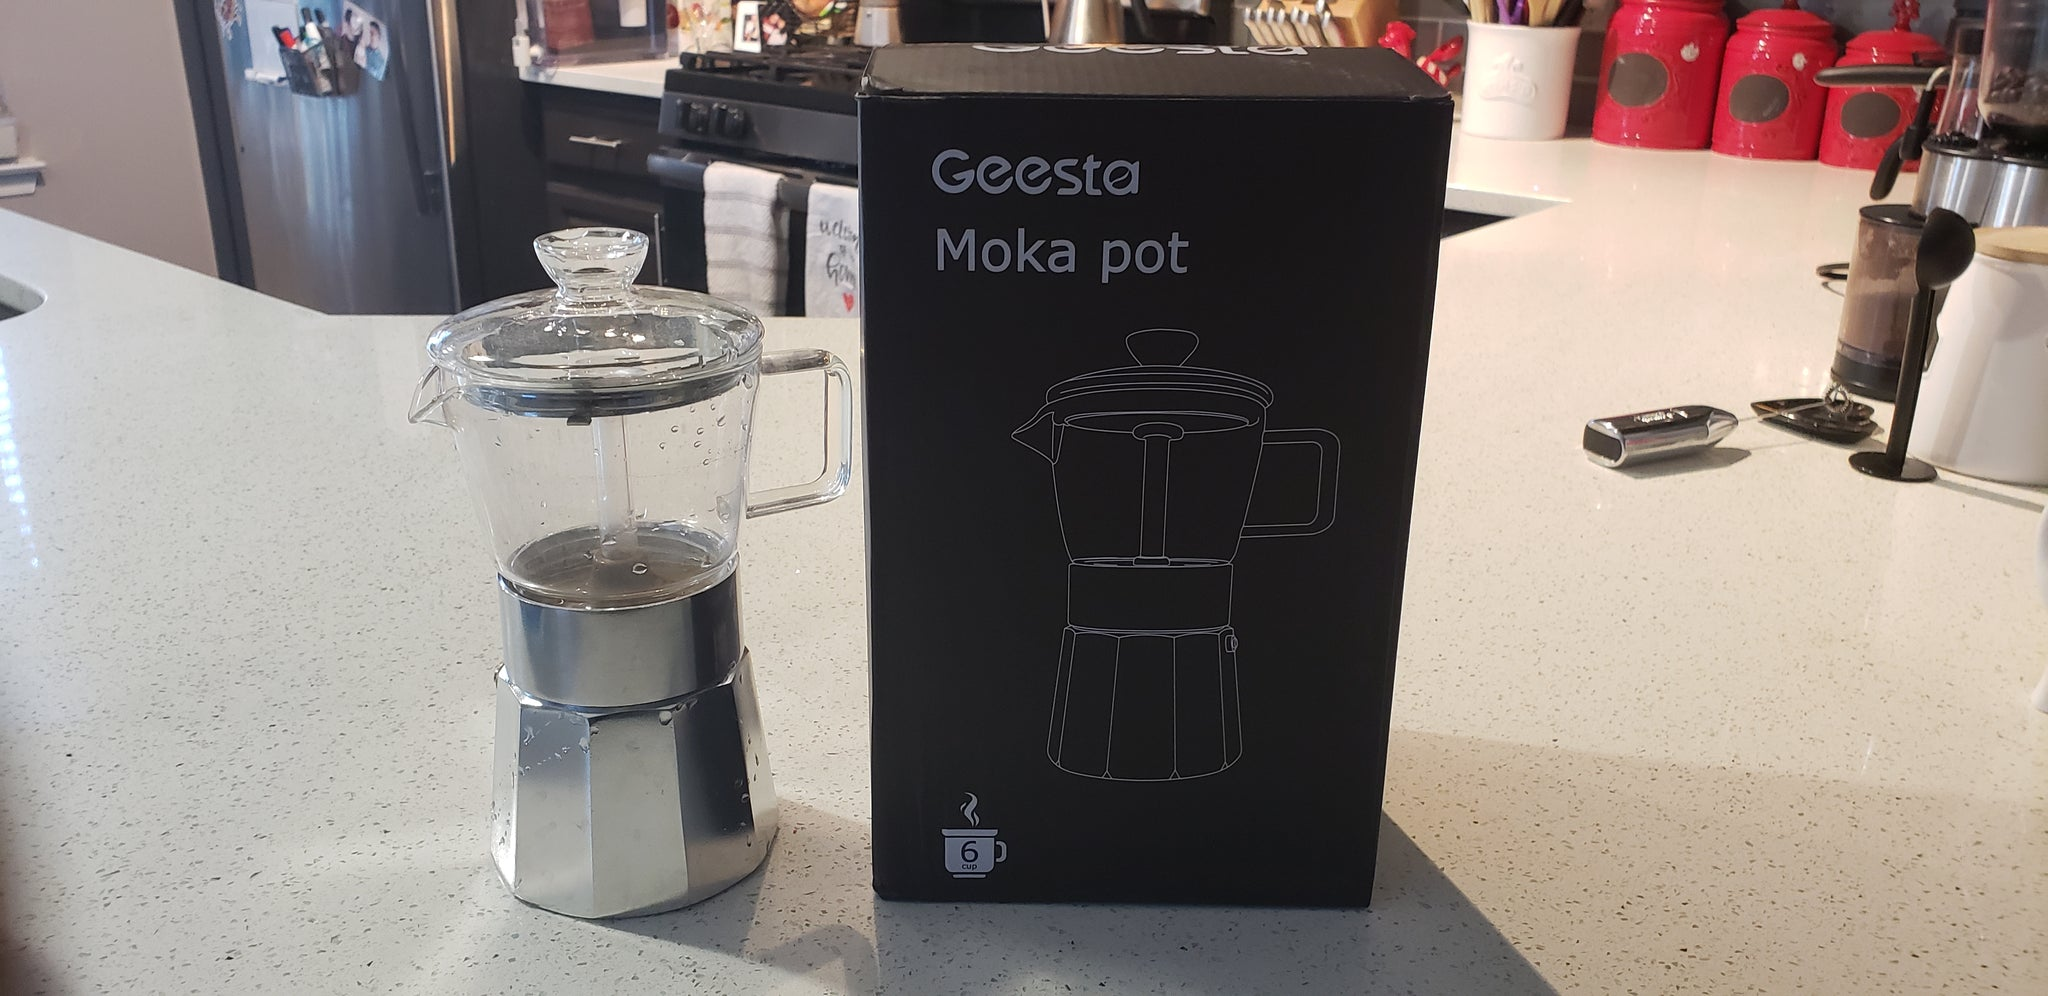 Geesta Moka Pot Review